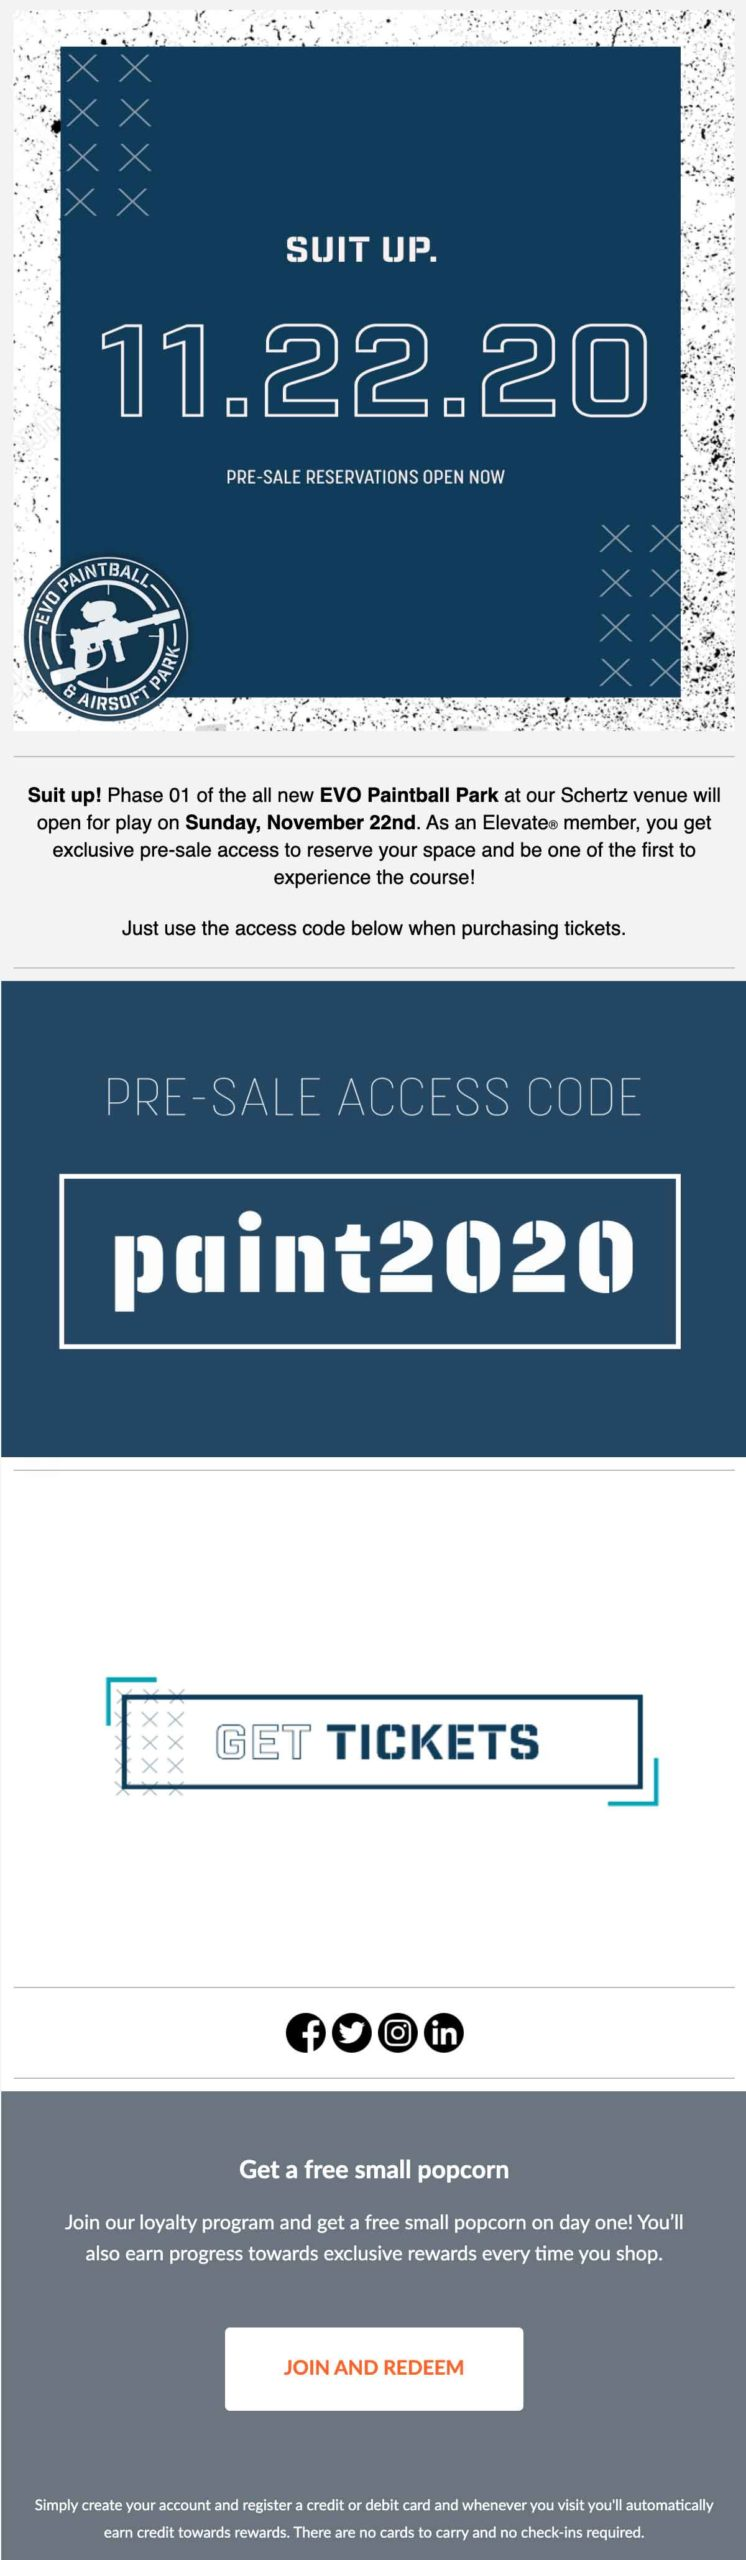 EVO paintball email